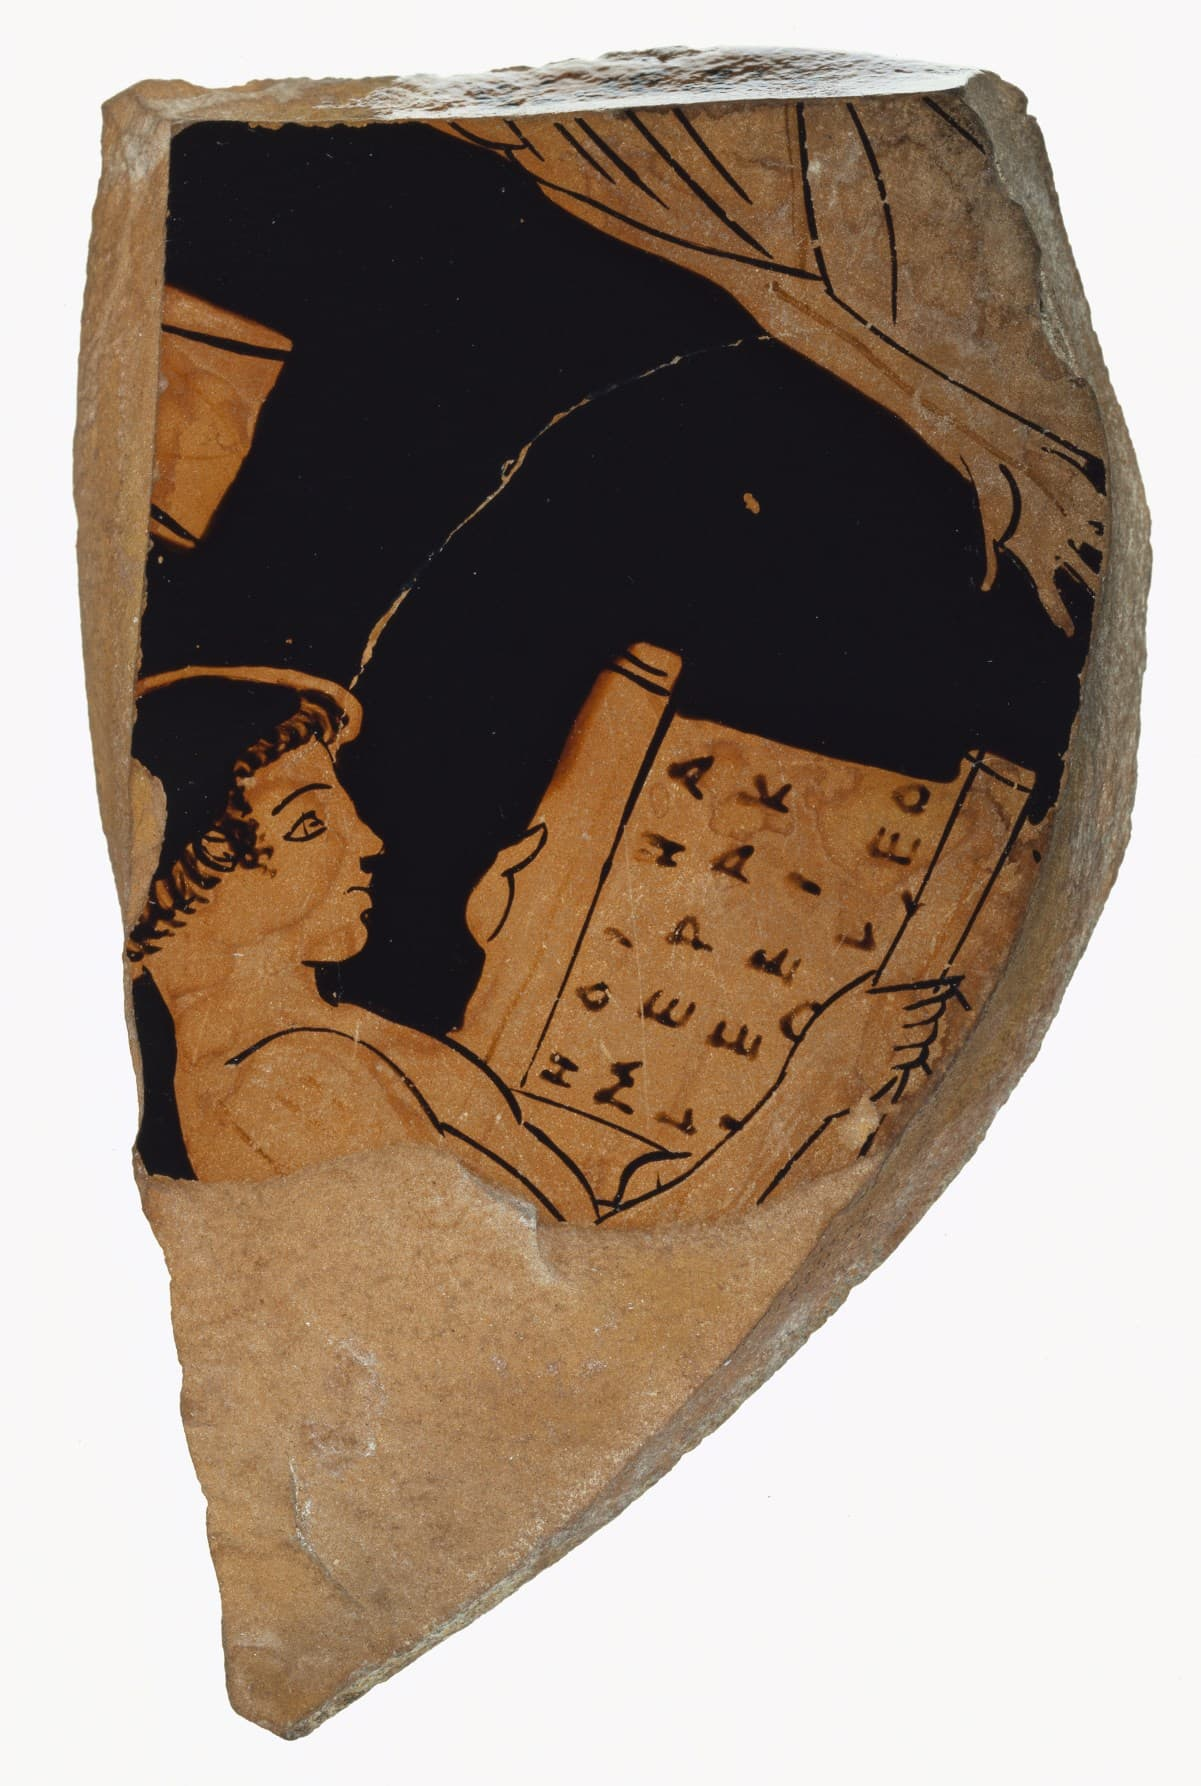 Attic Red-Figure Cup Fragment. (Digital image courtesy of the Getty's Open Content Program.)